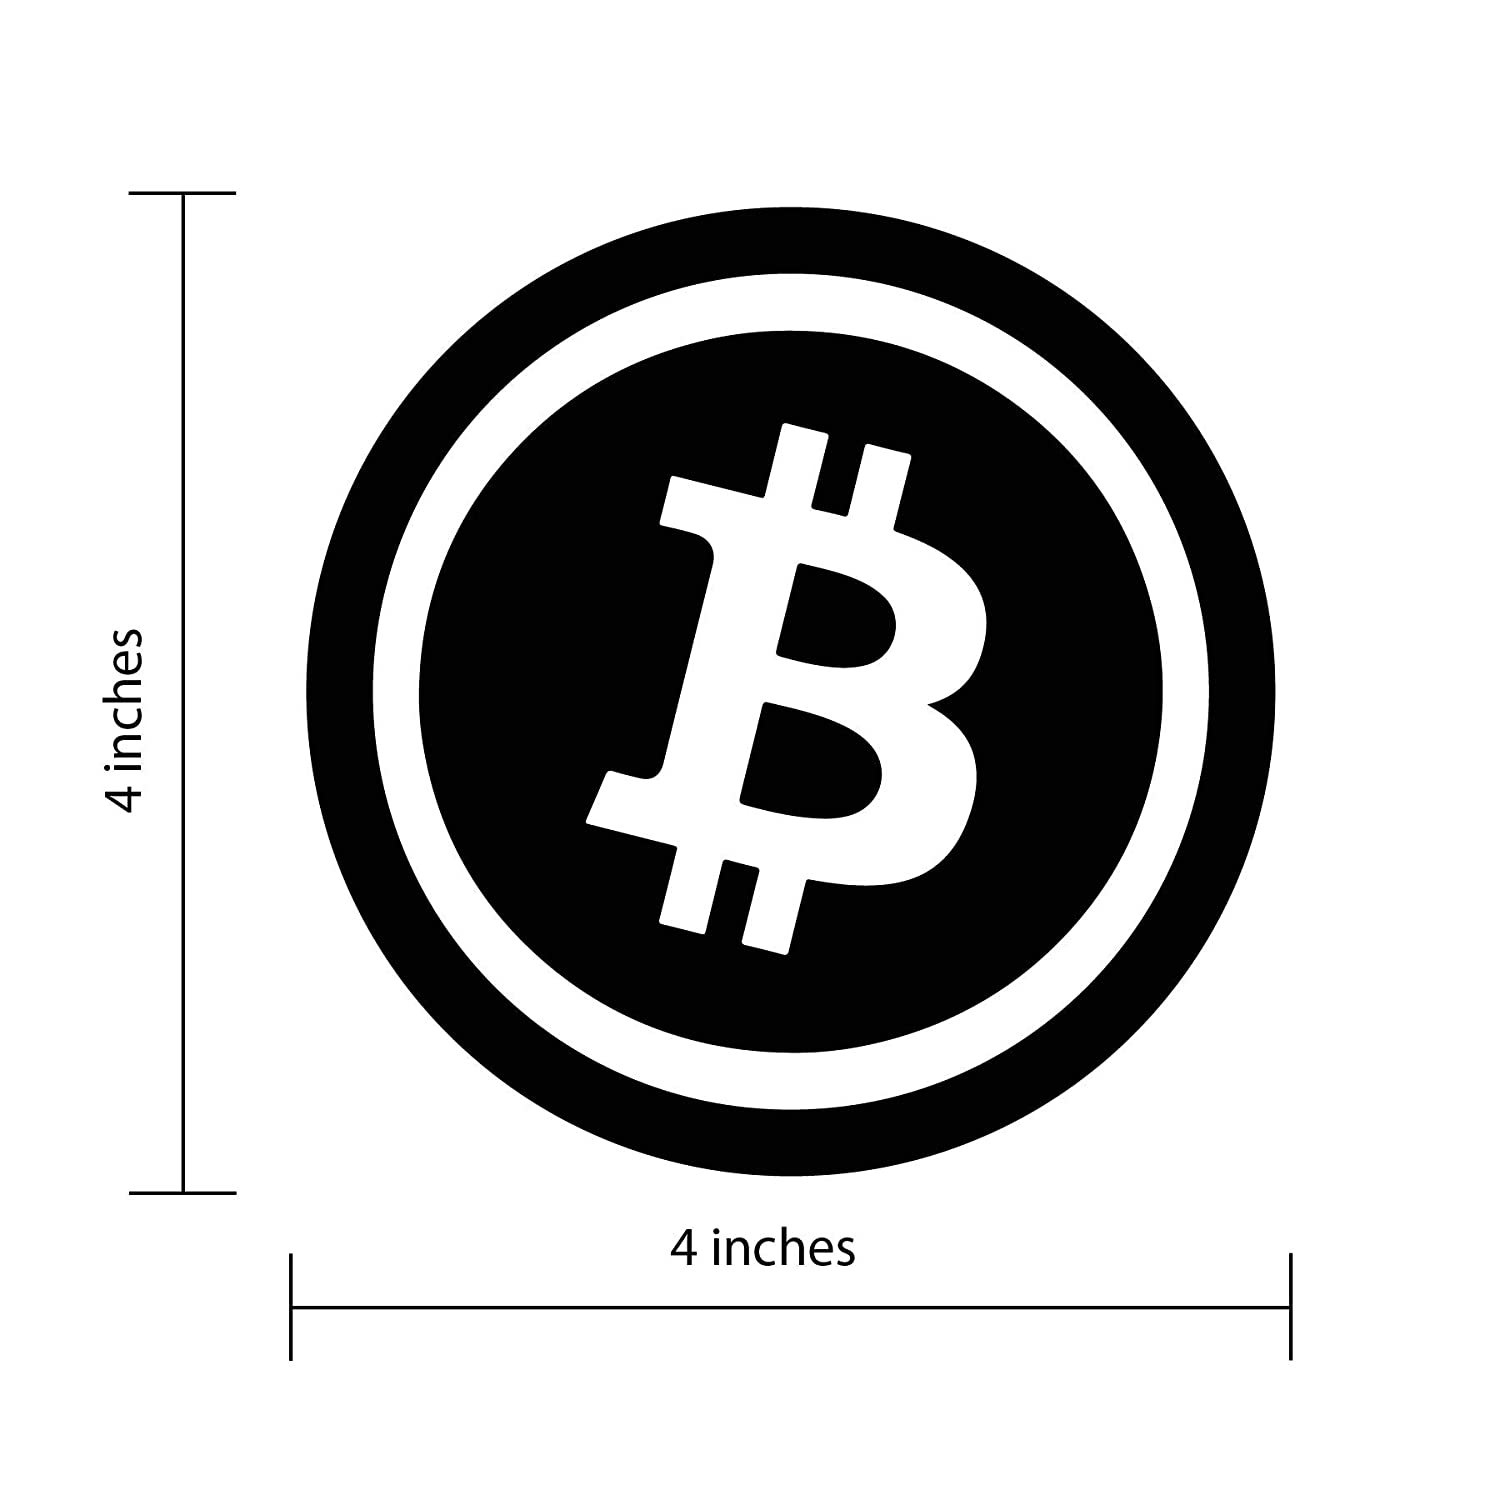 4Pillars Bitcoin Cryptocurrency Bumper Sticker Blockchain Perfect for Cars 4 Inch Diameter Stickers